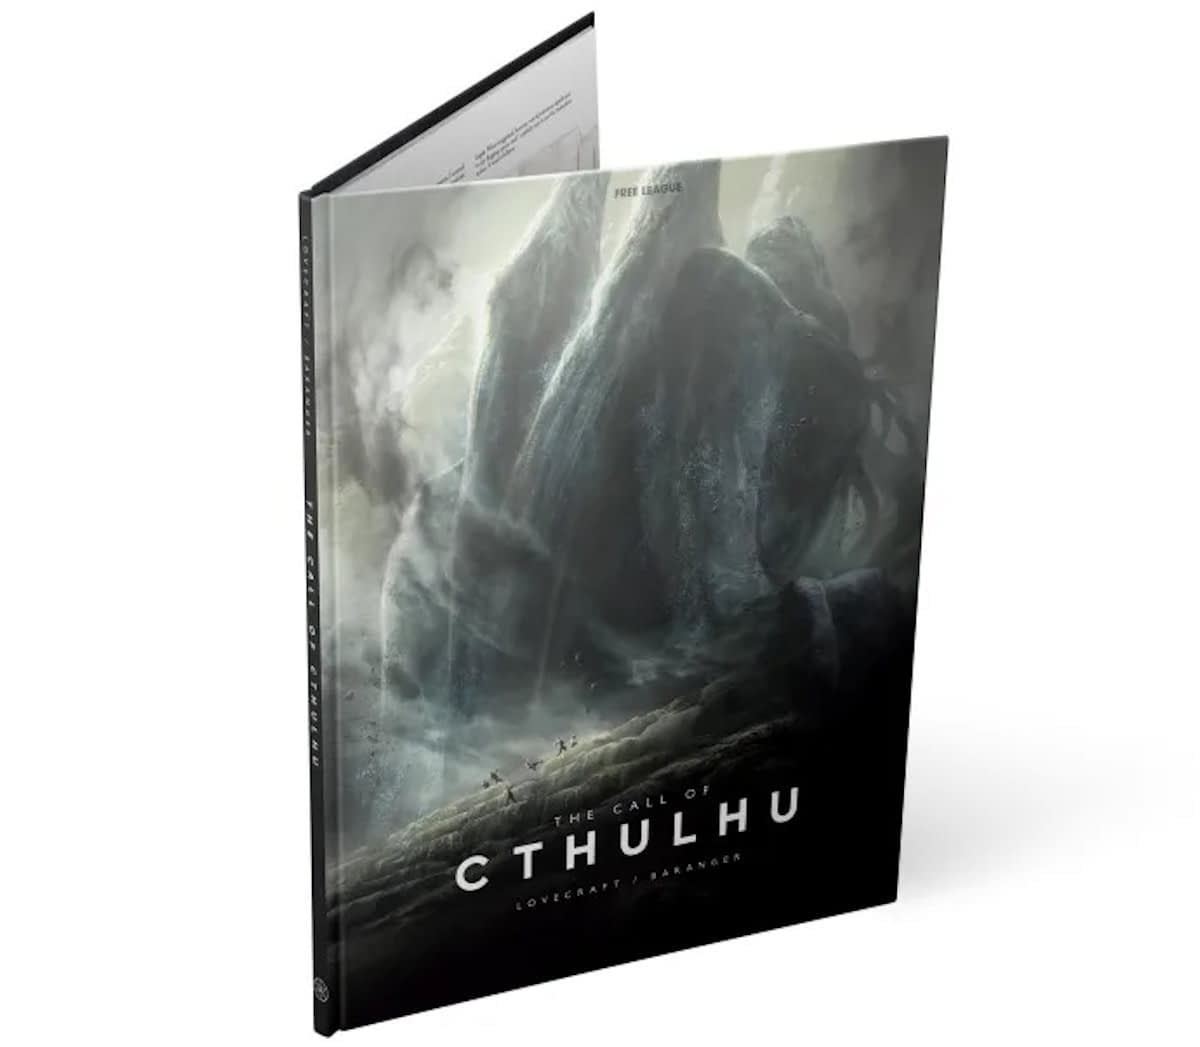 """Gorgeously Illustrated """"Call of Cthulhu"""" Book Available Now from Free League Publishing"""